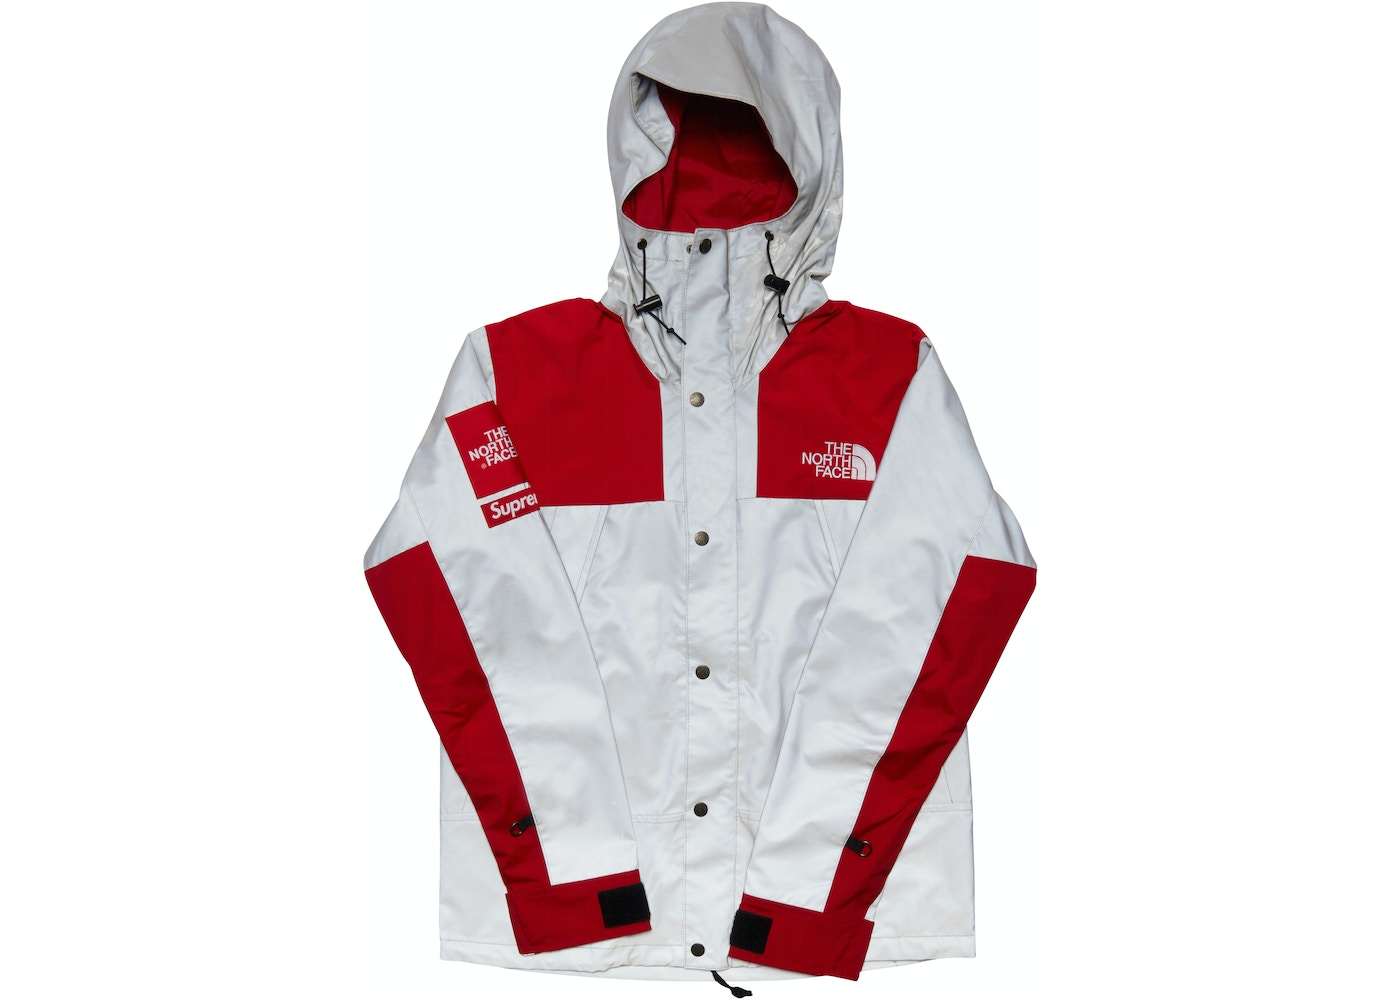 9910a042 Supreme The North Face 3M Reflective Mountain Jacket Red - SS13